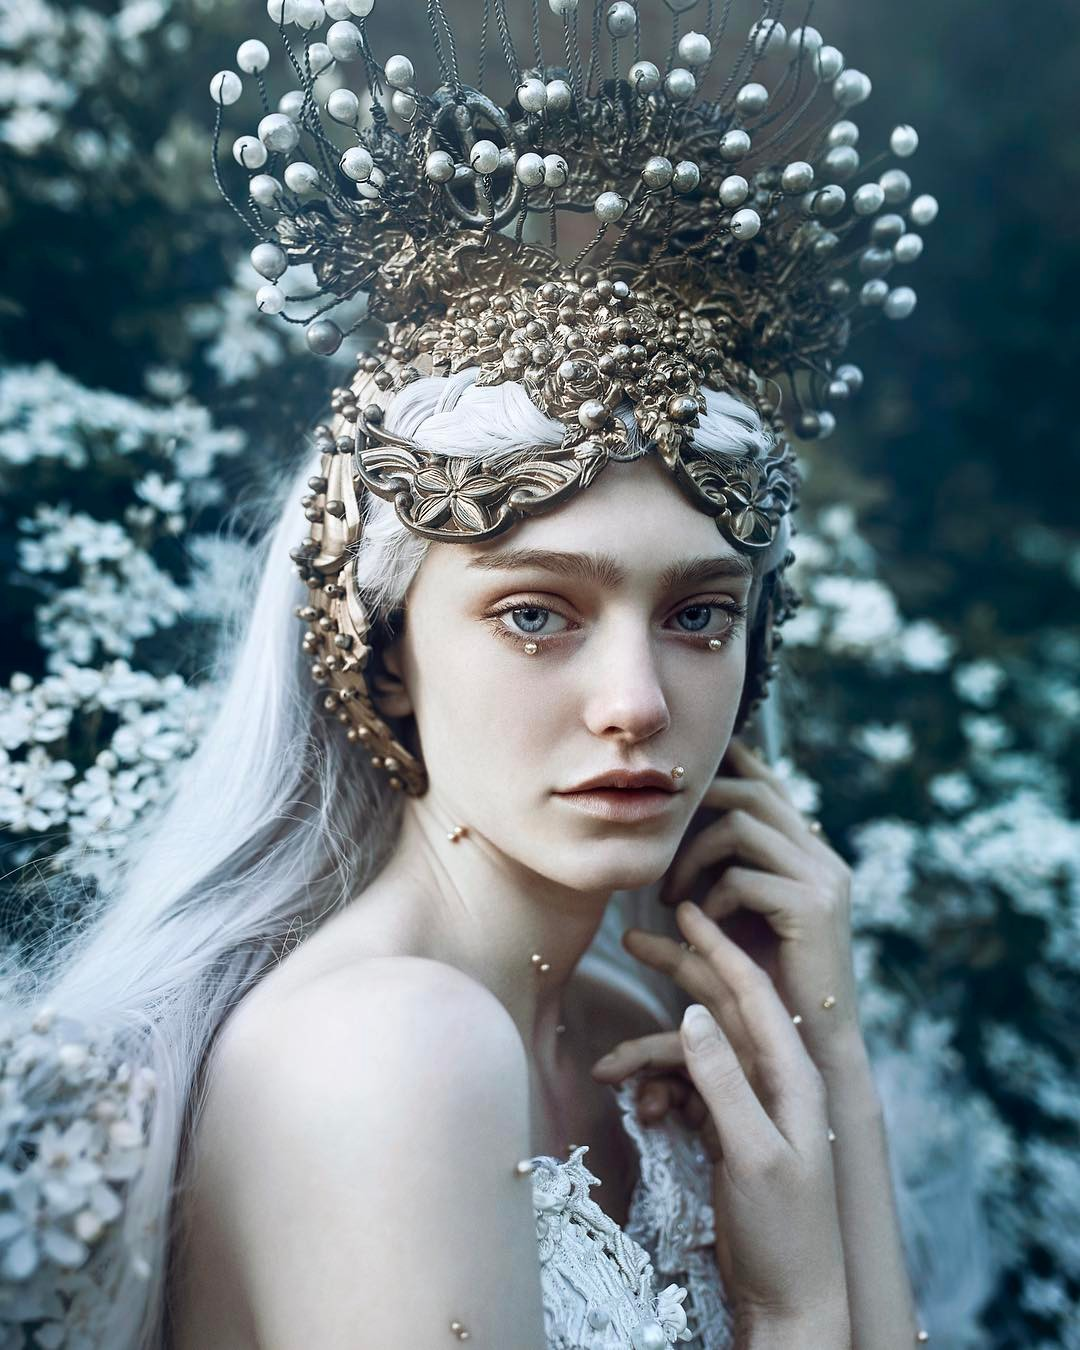 Impressive Fairy Tale Photos by Bella Kotak